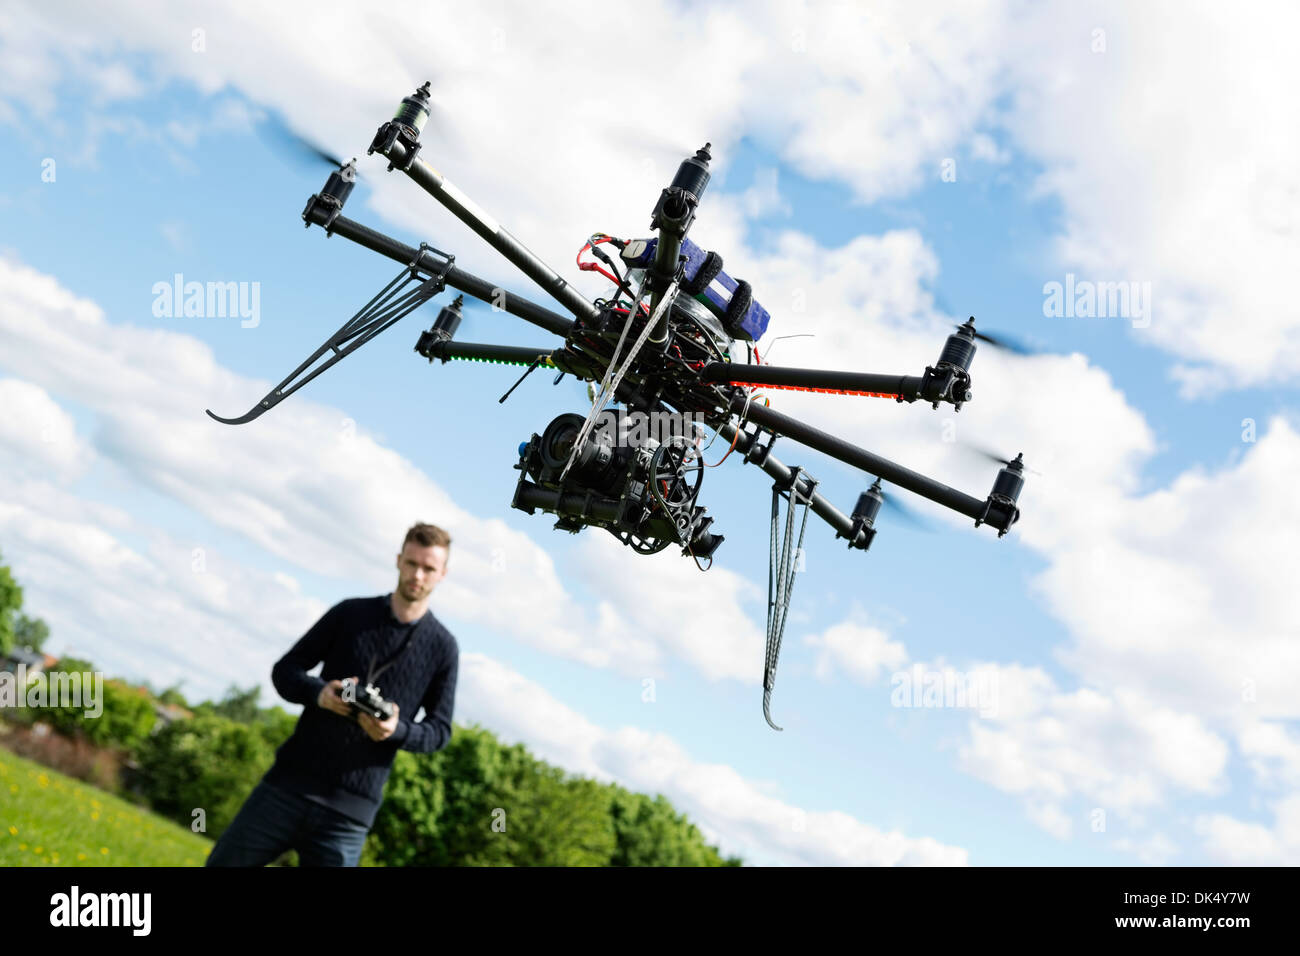 Technician Flying UAV Helicopter in Park - Stock Image